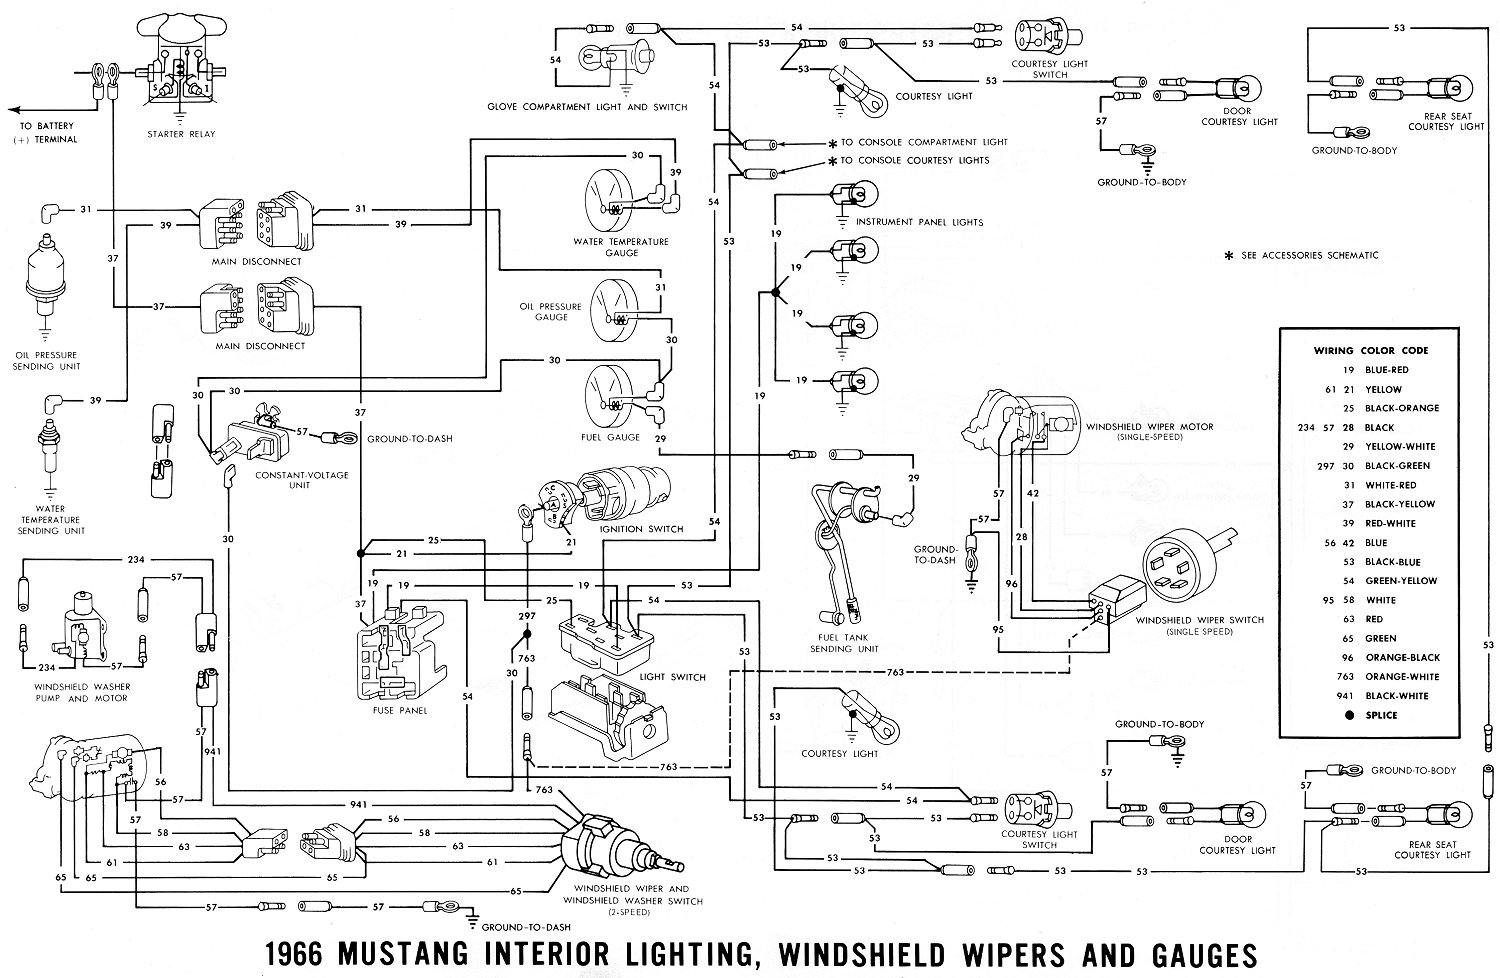 1966 Mustang Color Wiring Diagram Data Wiring Schema 03 Mustang GT Fuse Box  Diagram 65 Mustang Fuse Box Diagram